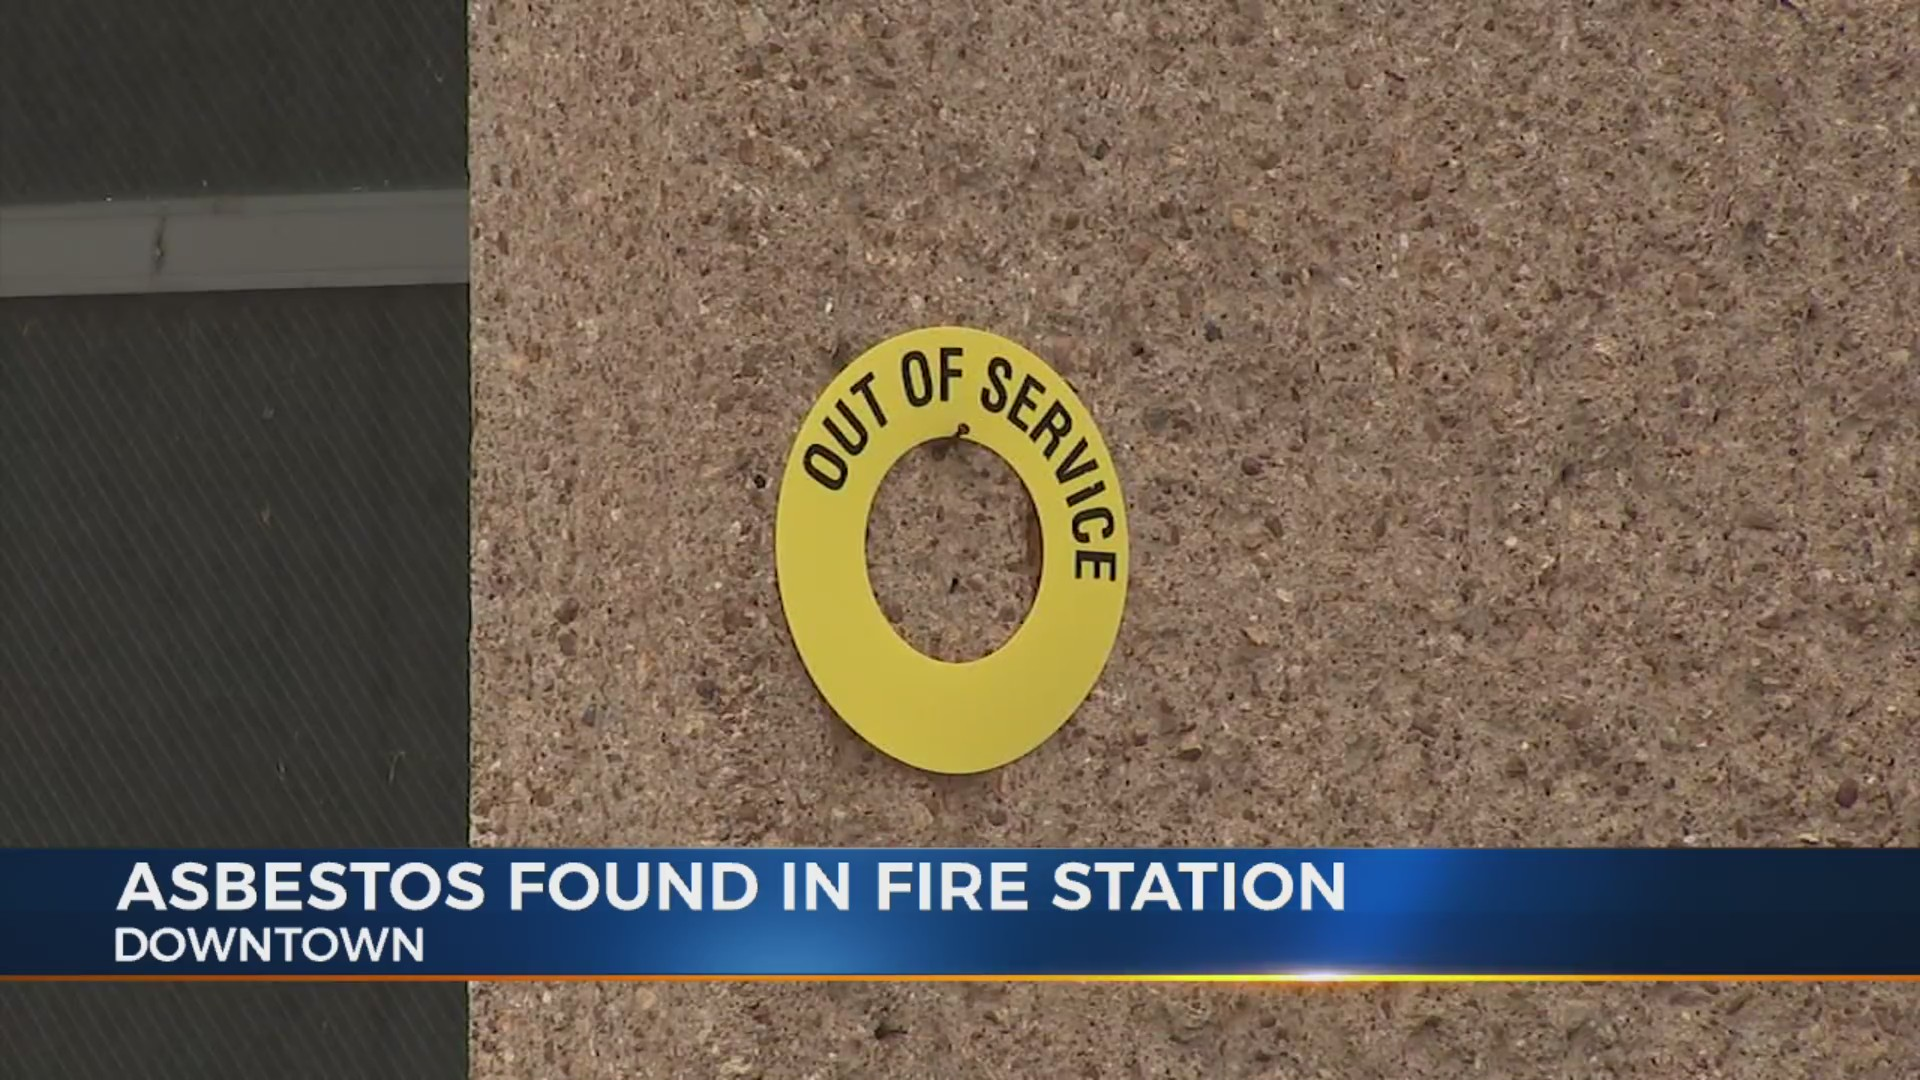 Asbestos found inside downtown fire station